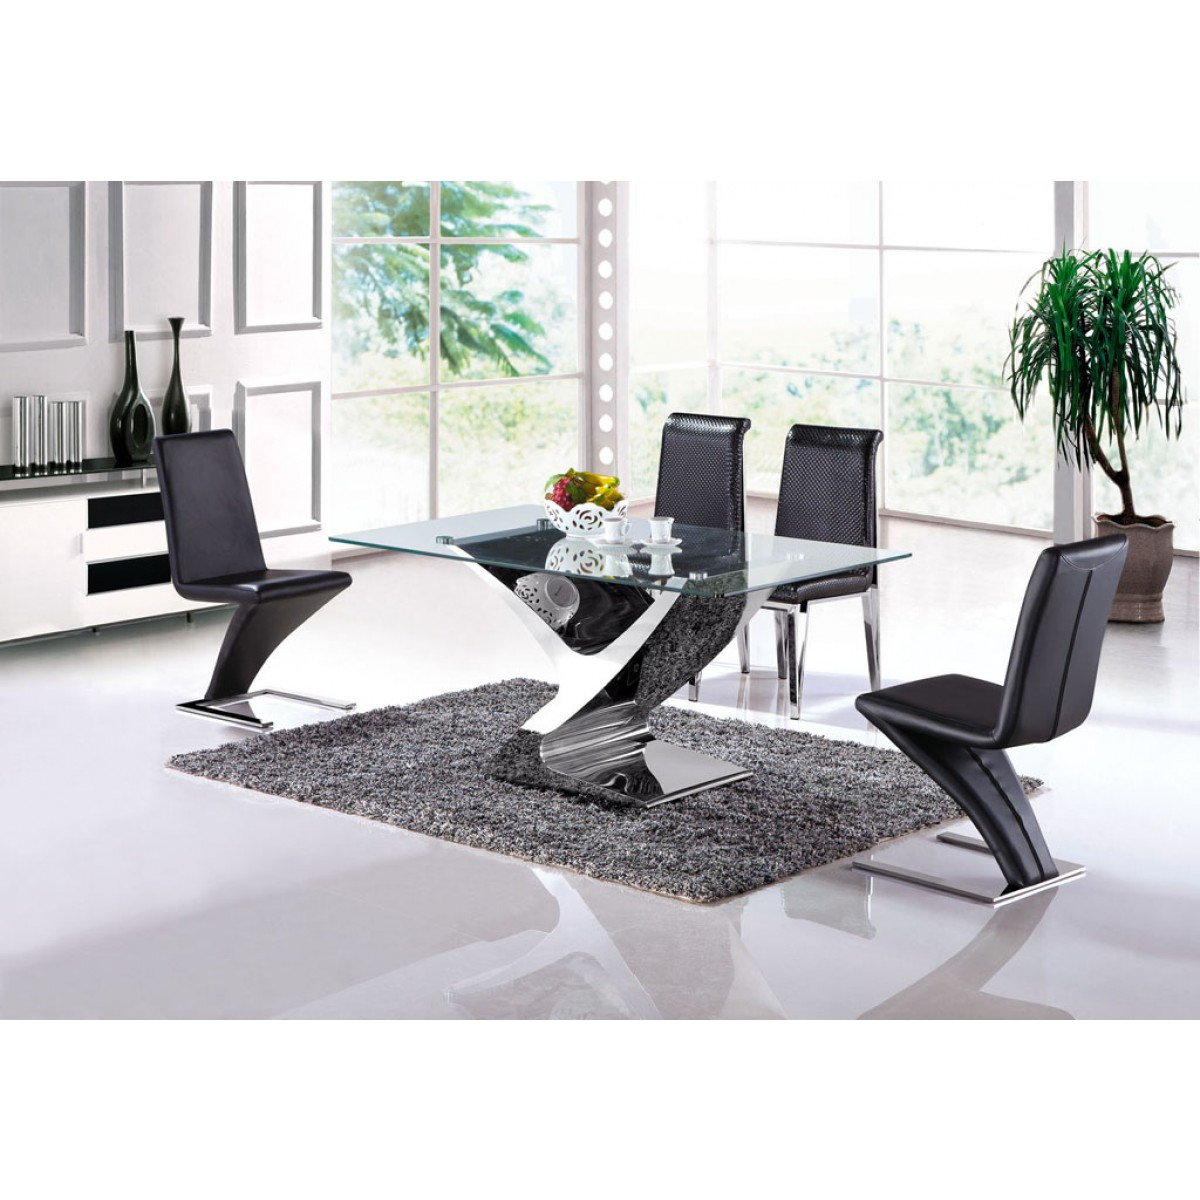 Table de salle manger en inox selena pop for Table de sejour design